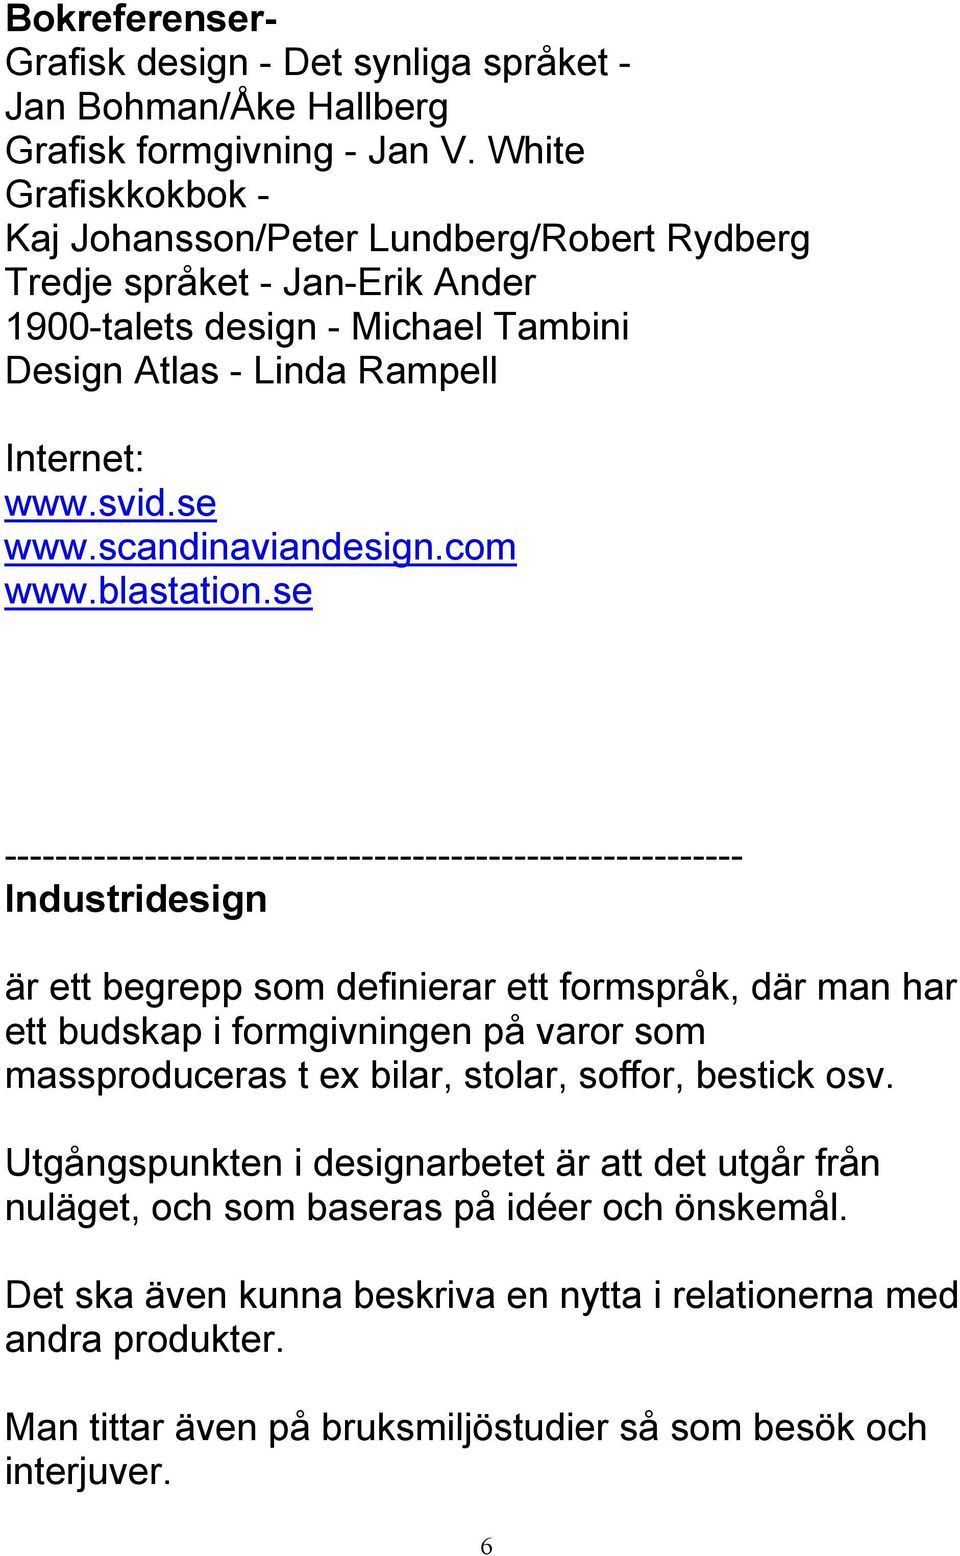 scandinaviandesign.com www.blastation.